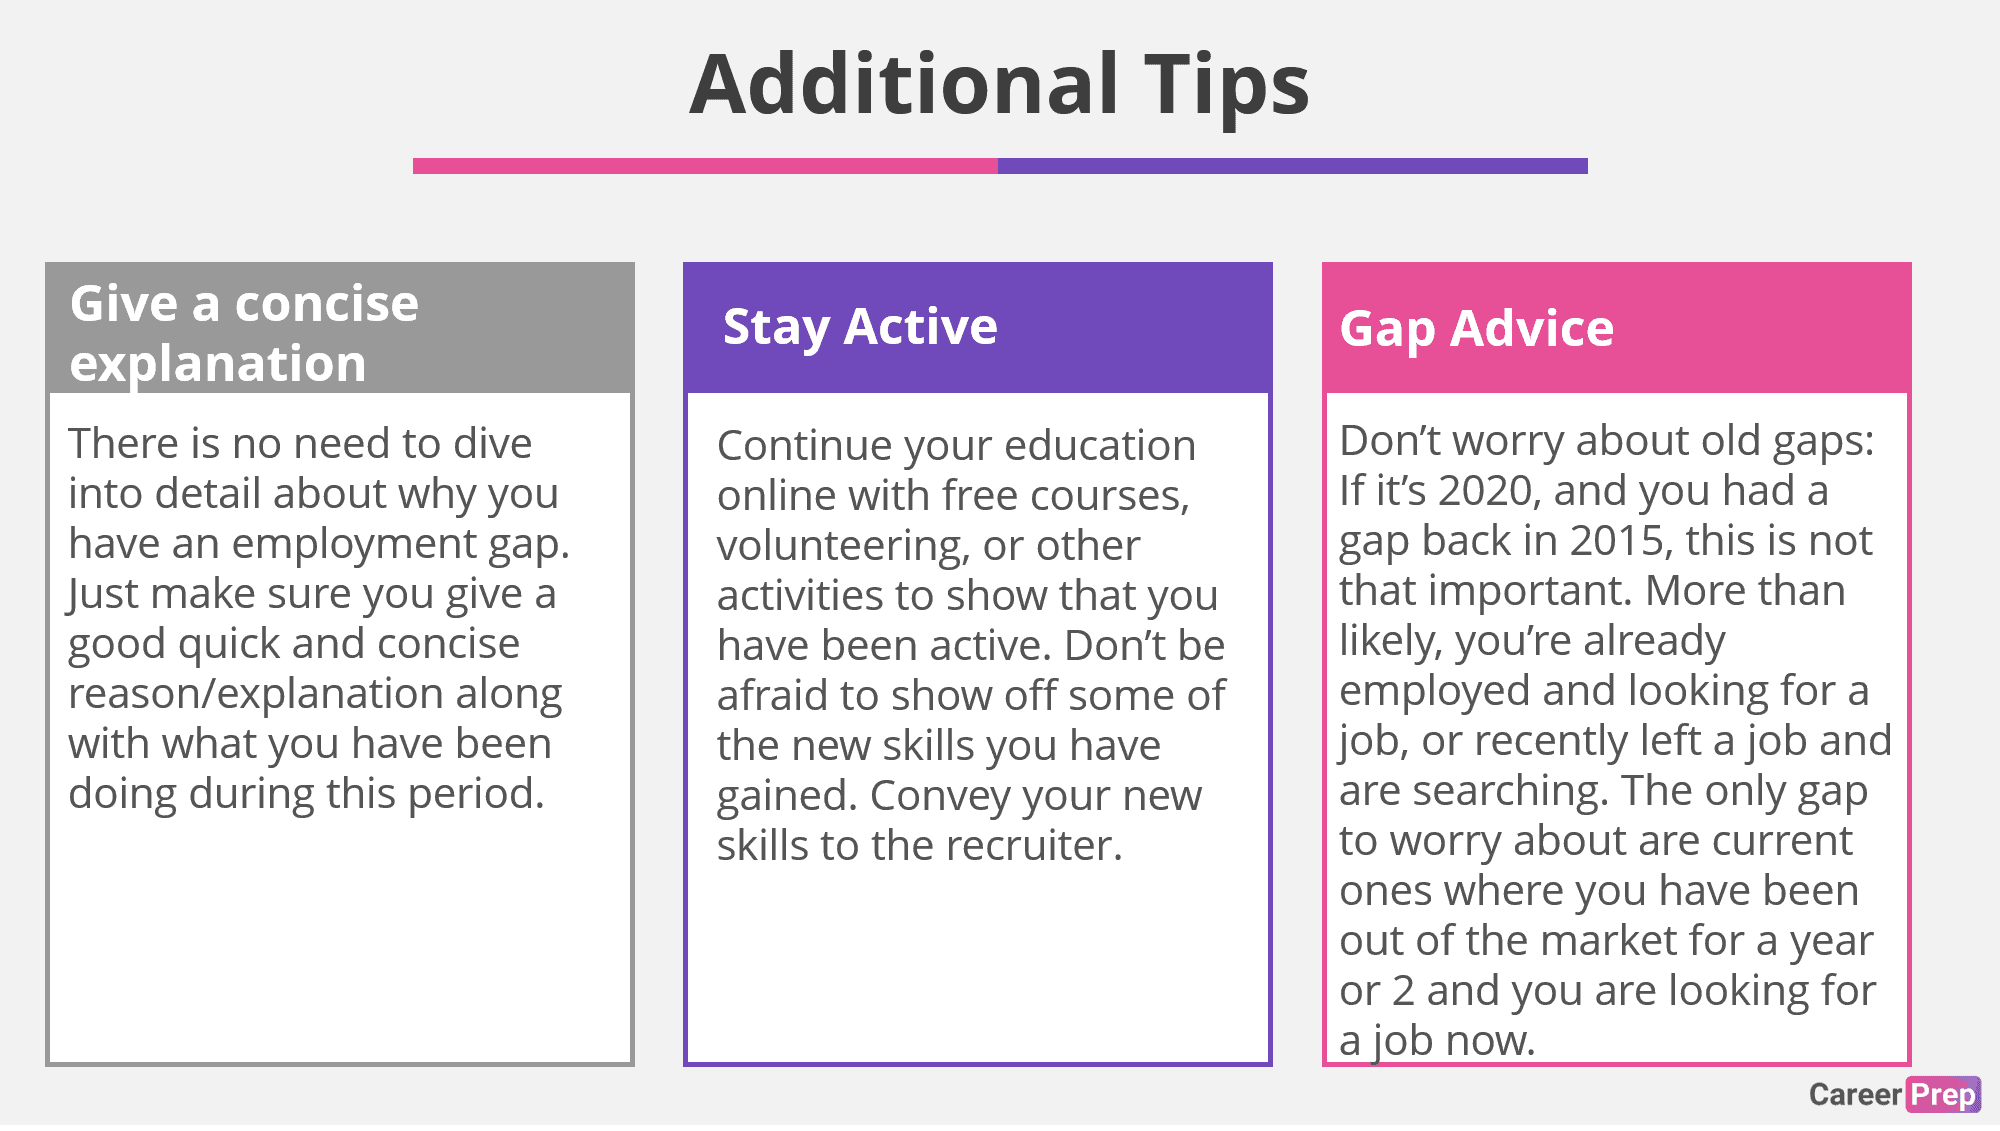 Additional tips on how to explain gaps on your resume